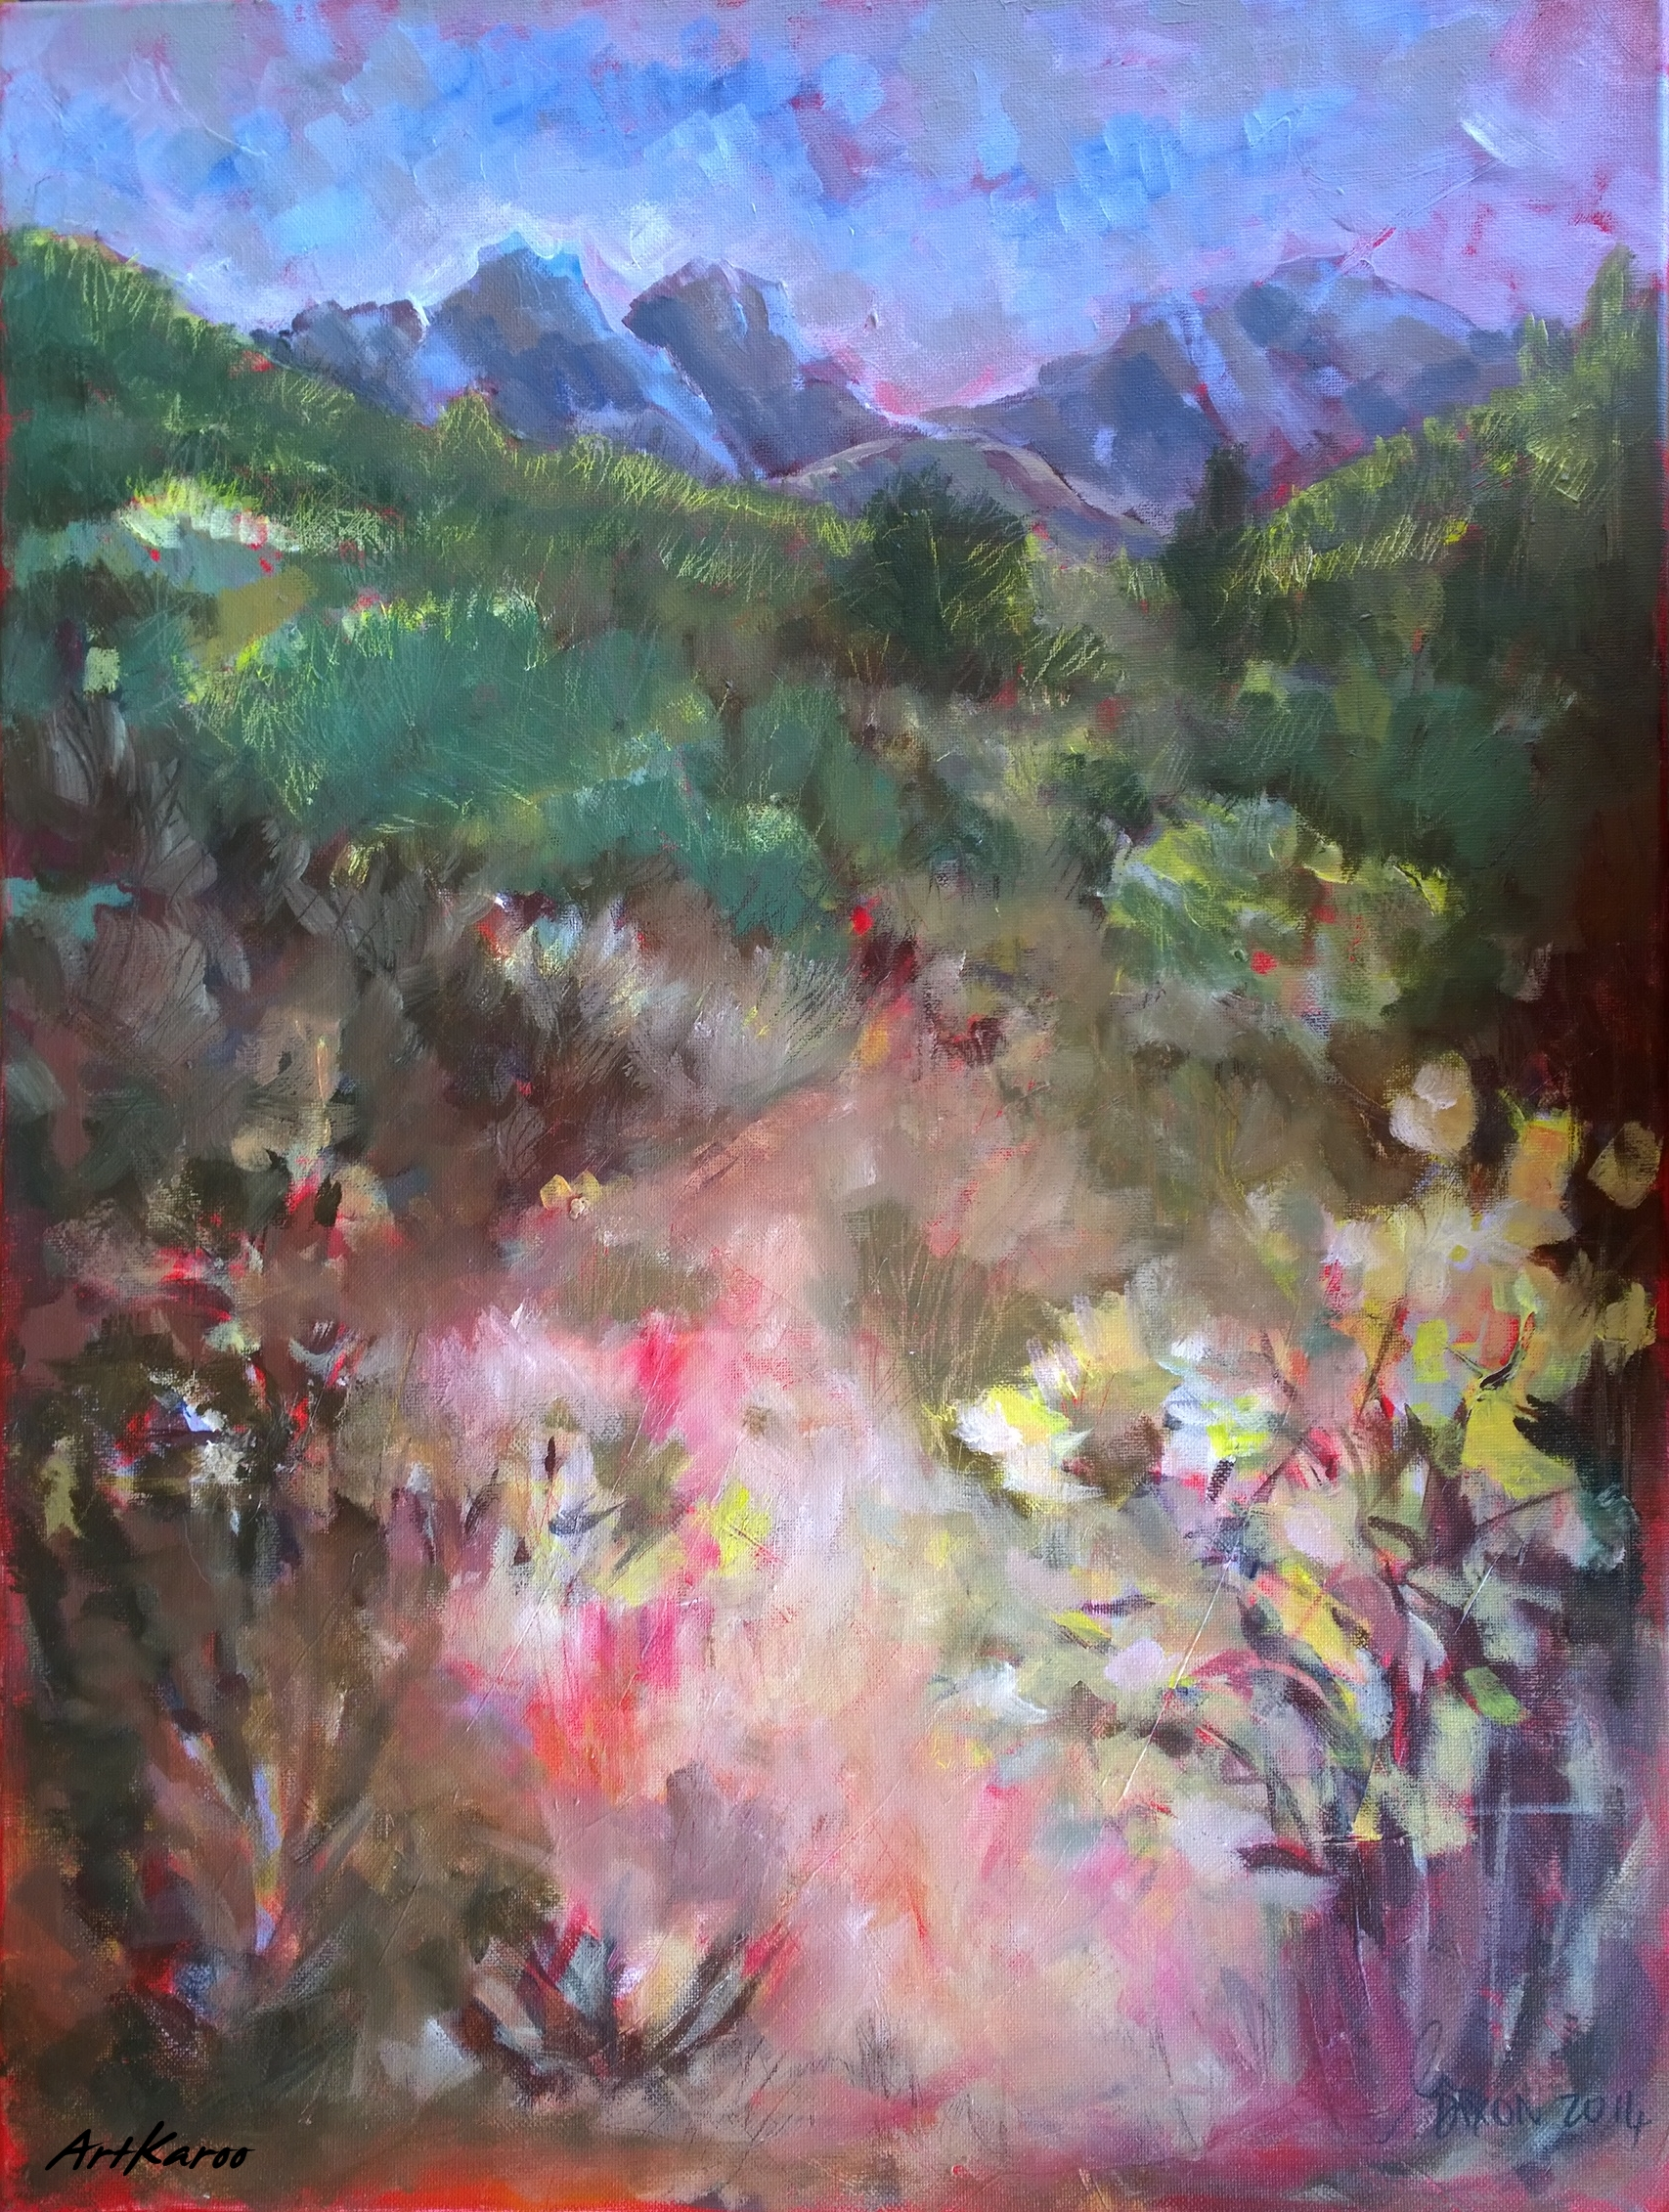 Janet Dixon, Veld in Flower, Oil on Canvas, 61x55cm, 5648